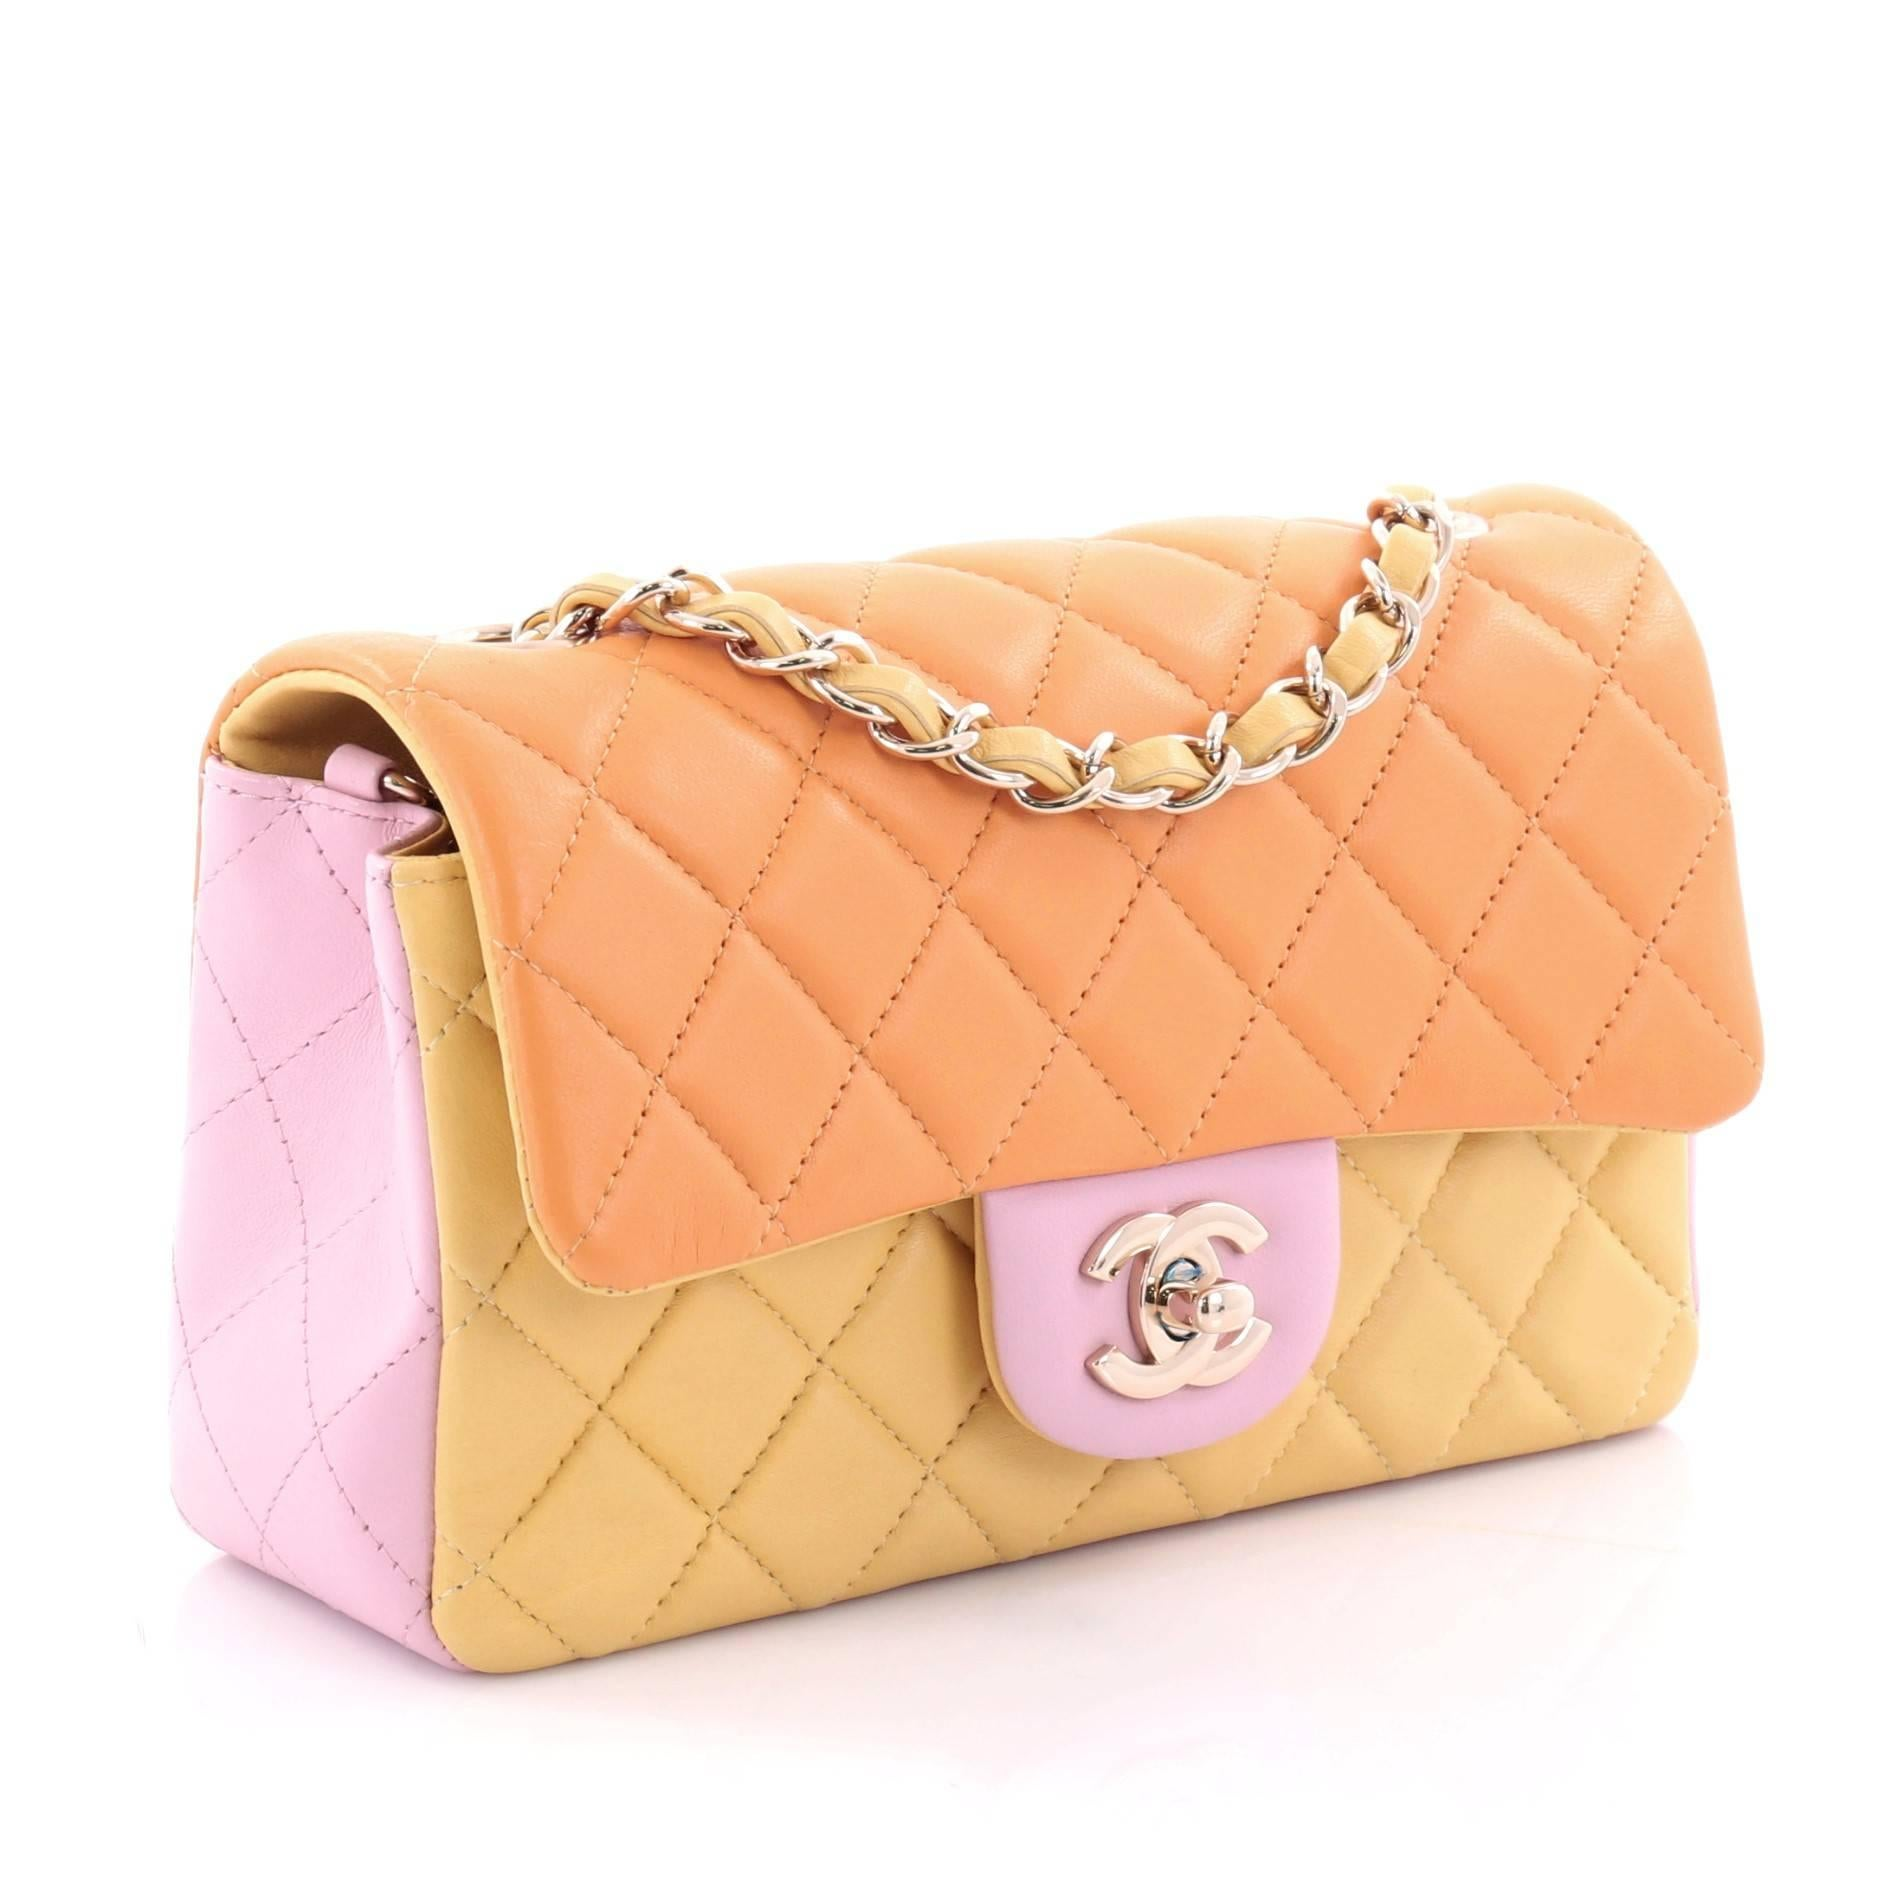 7062bedb2731 Chanel Tricolor Classic Single Flap Bag Quilted Lambskin Mini at 1stdibs